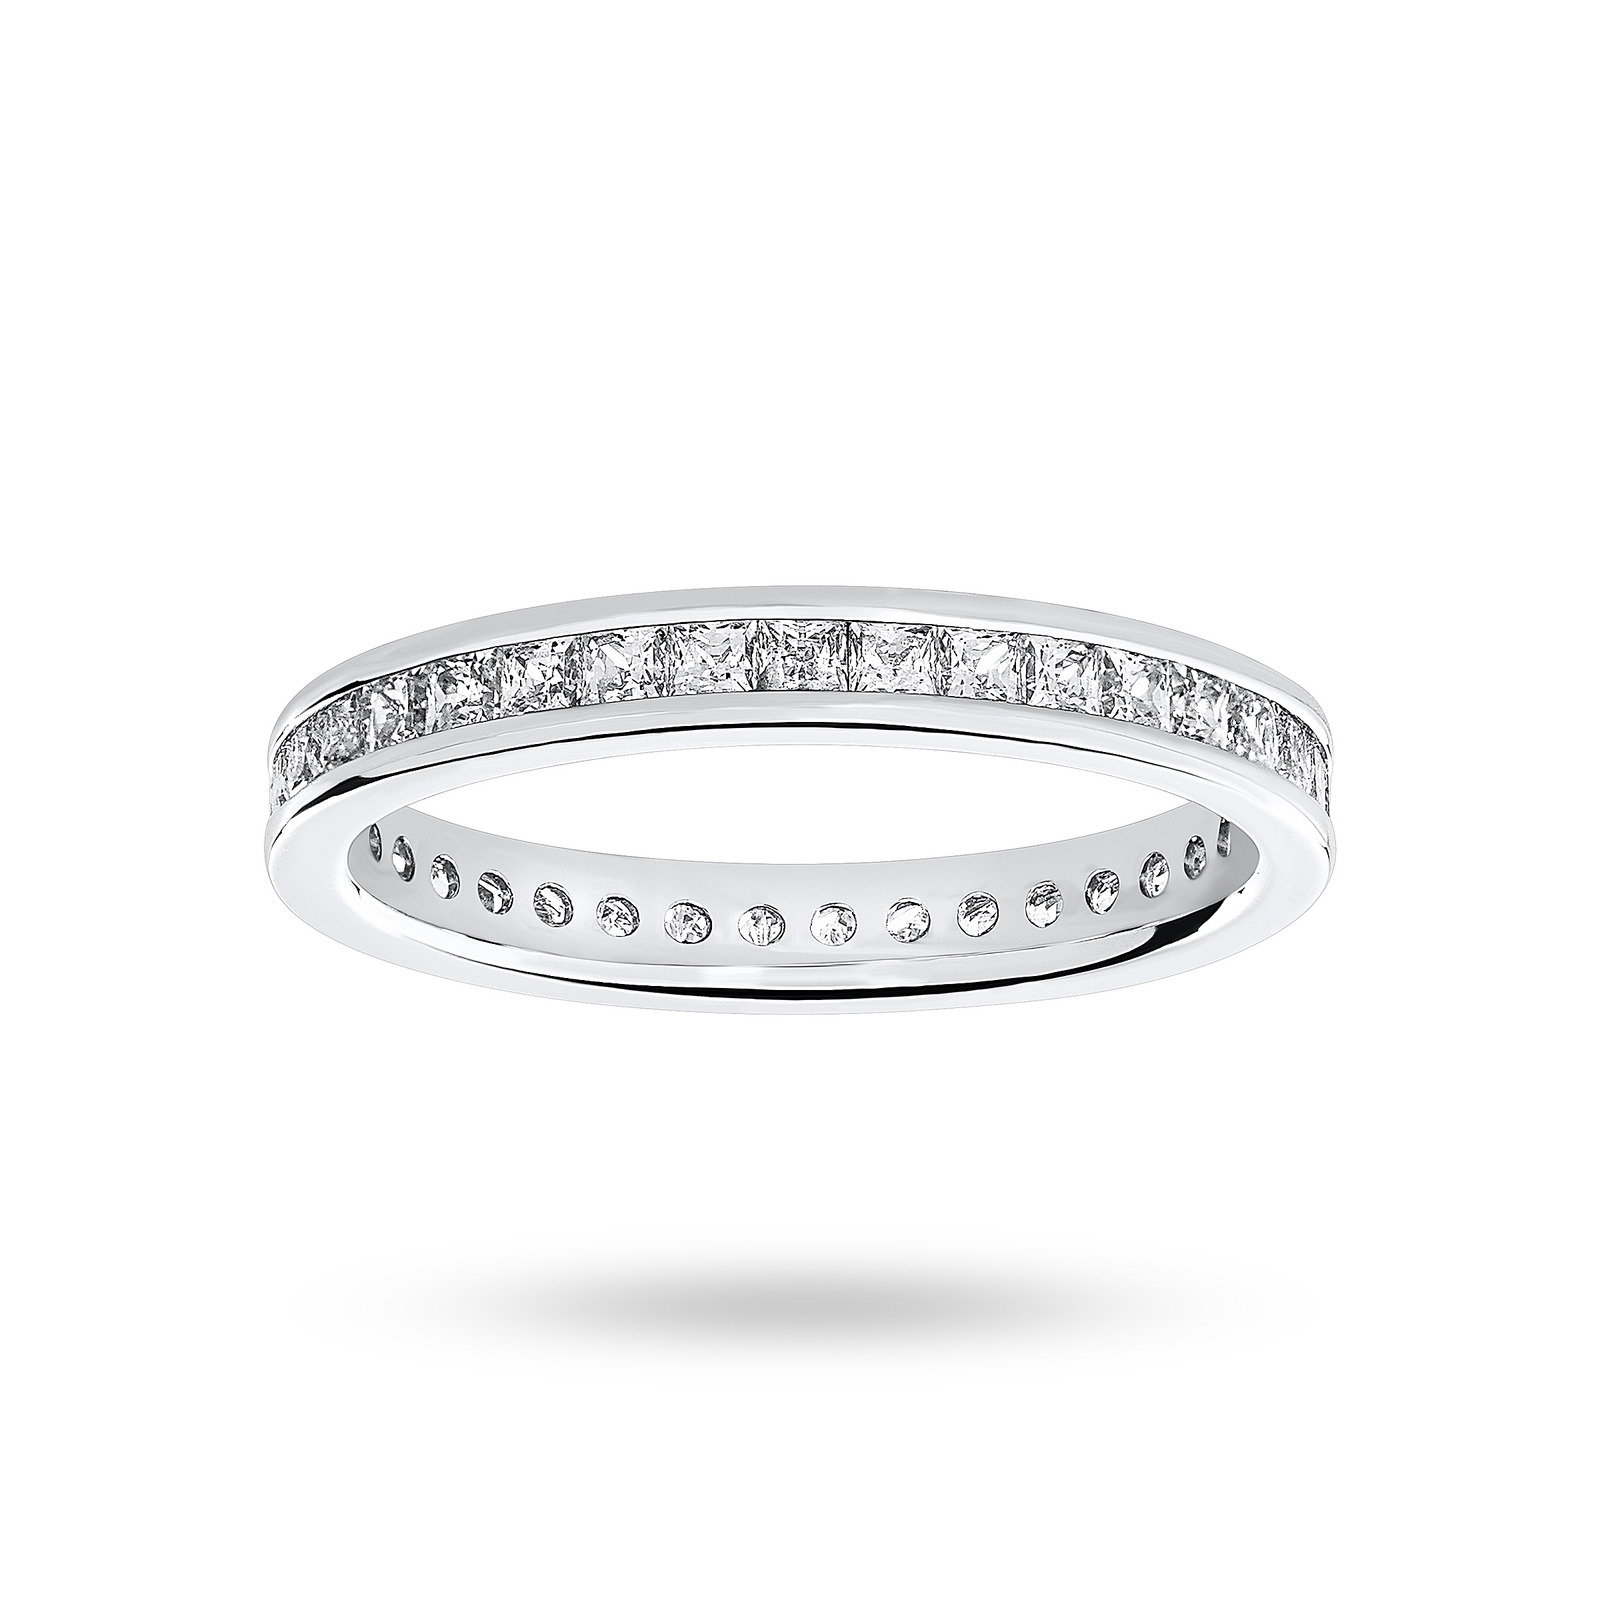 18ct White Gold 1.00ct Princess Cut Full Eternity Ring - Ring Size K